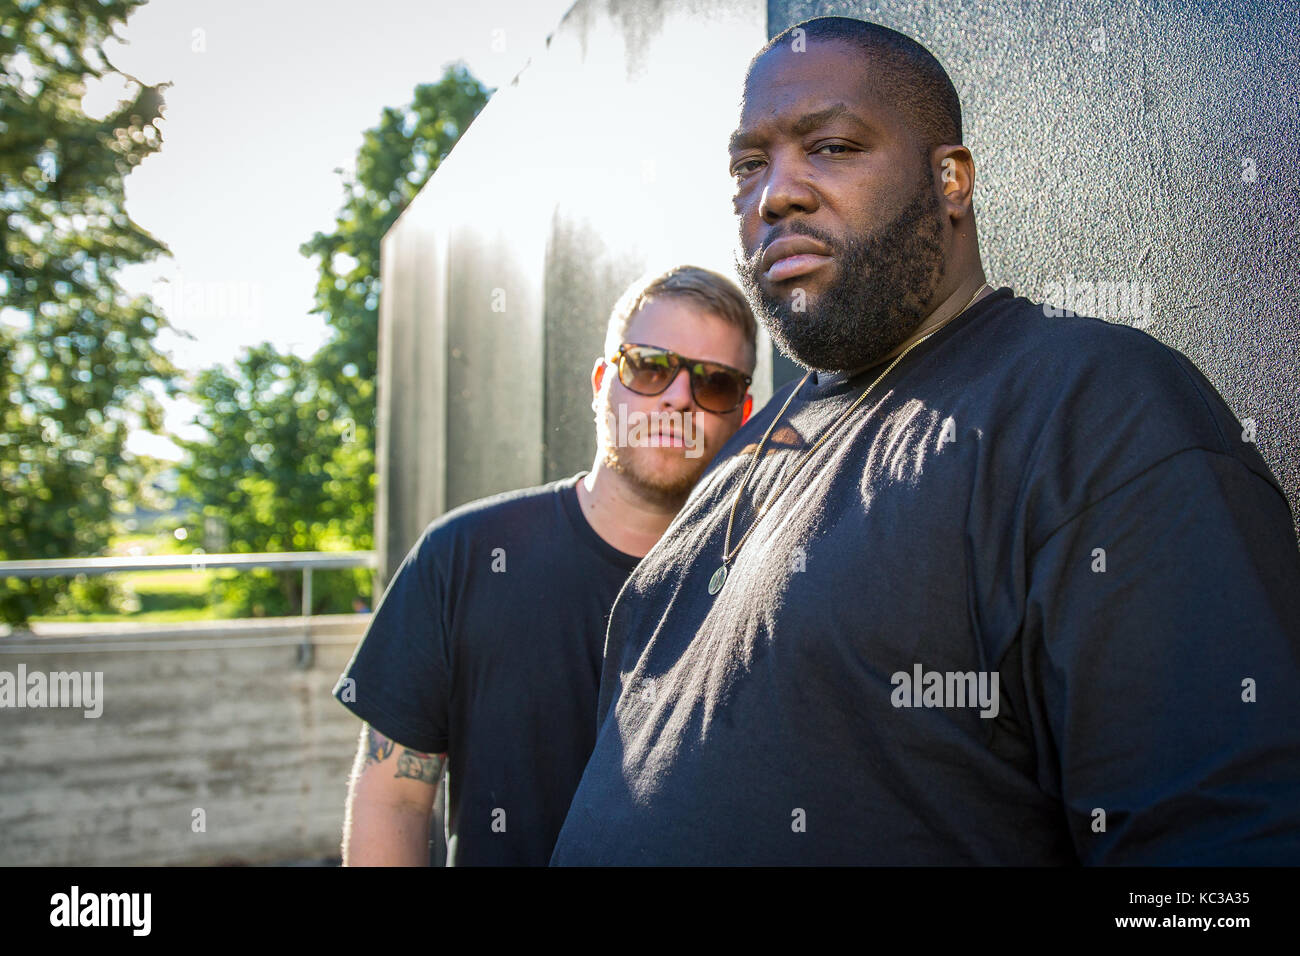 The American hip hop and rap duo Run The Jewels is portrayed